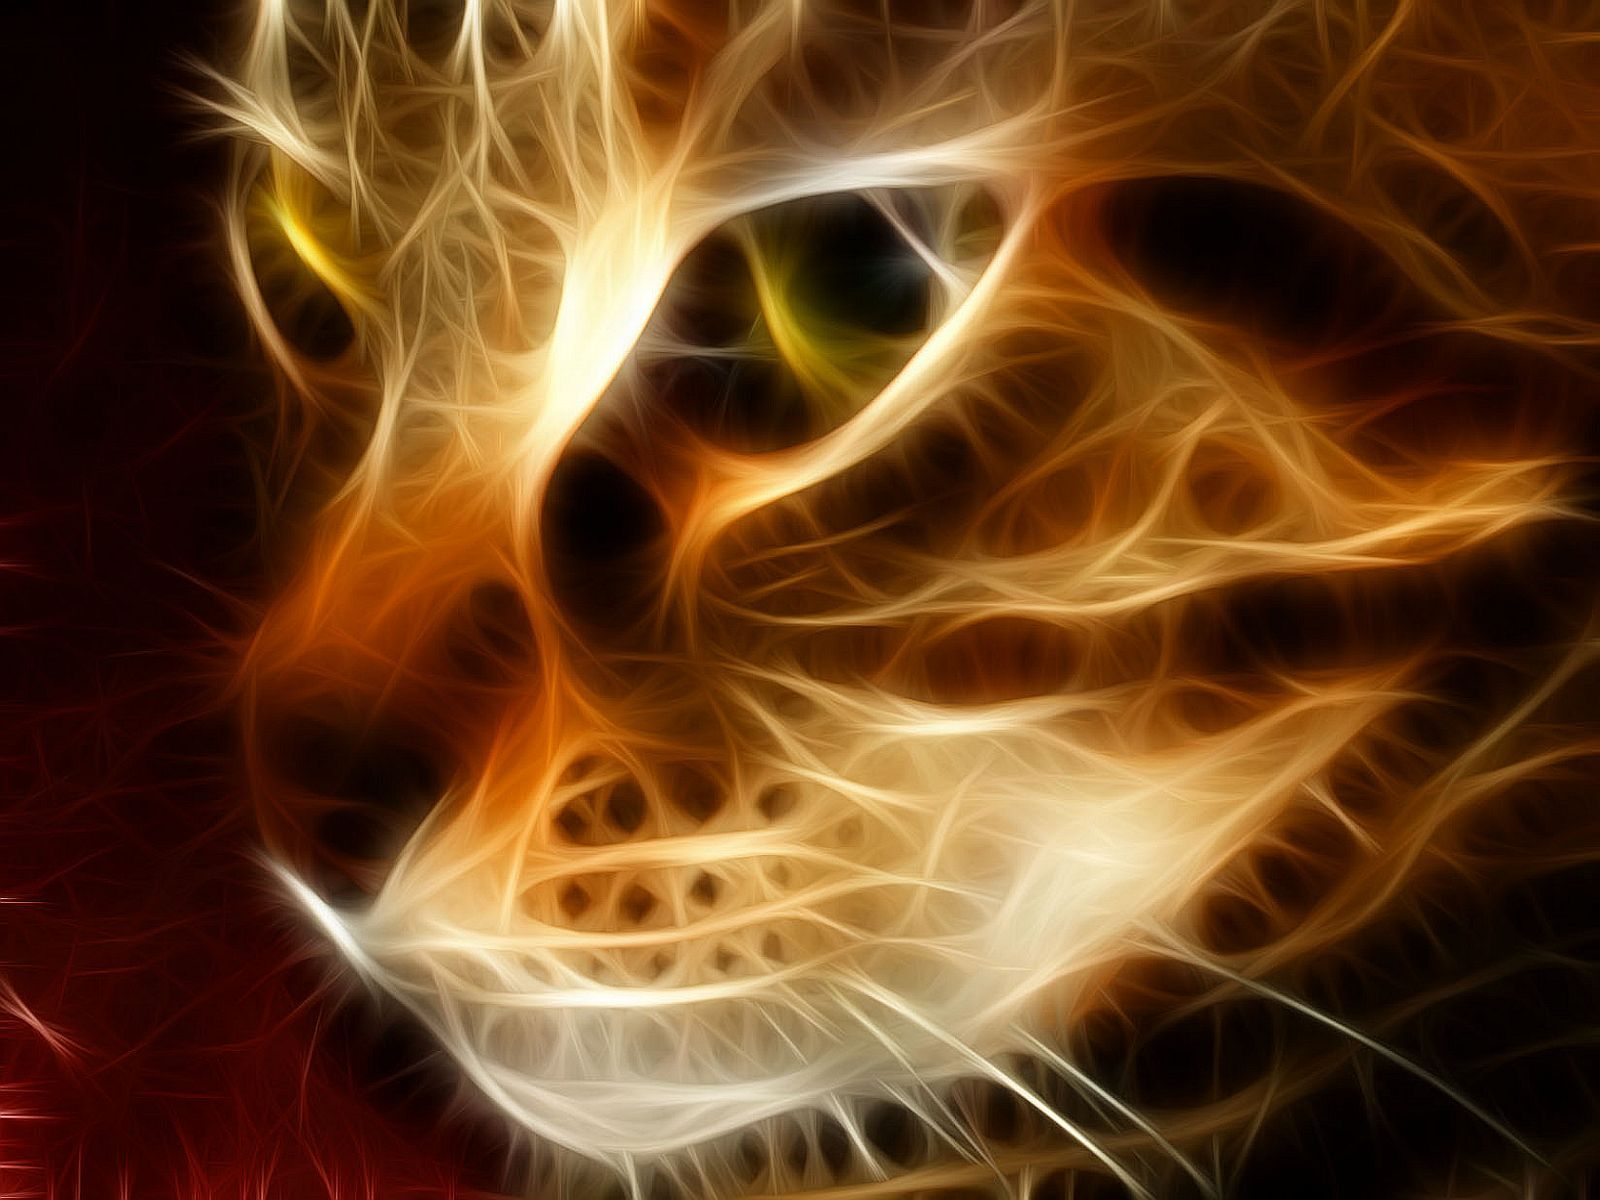 Animal - Cat  Camelot Fractal Kitten Wallpaper